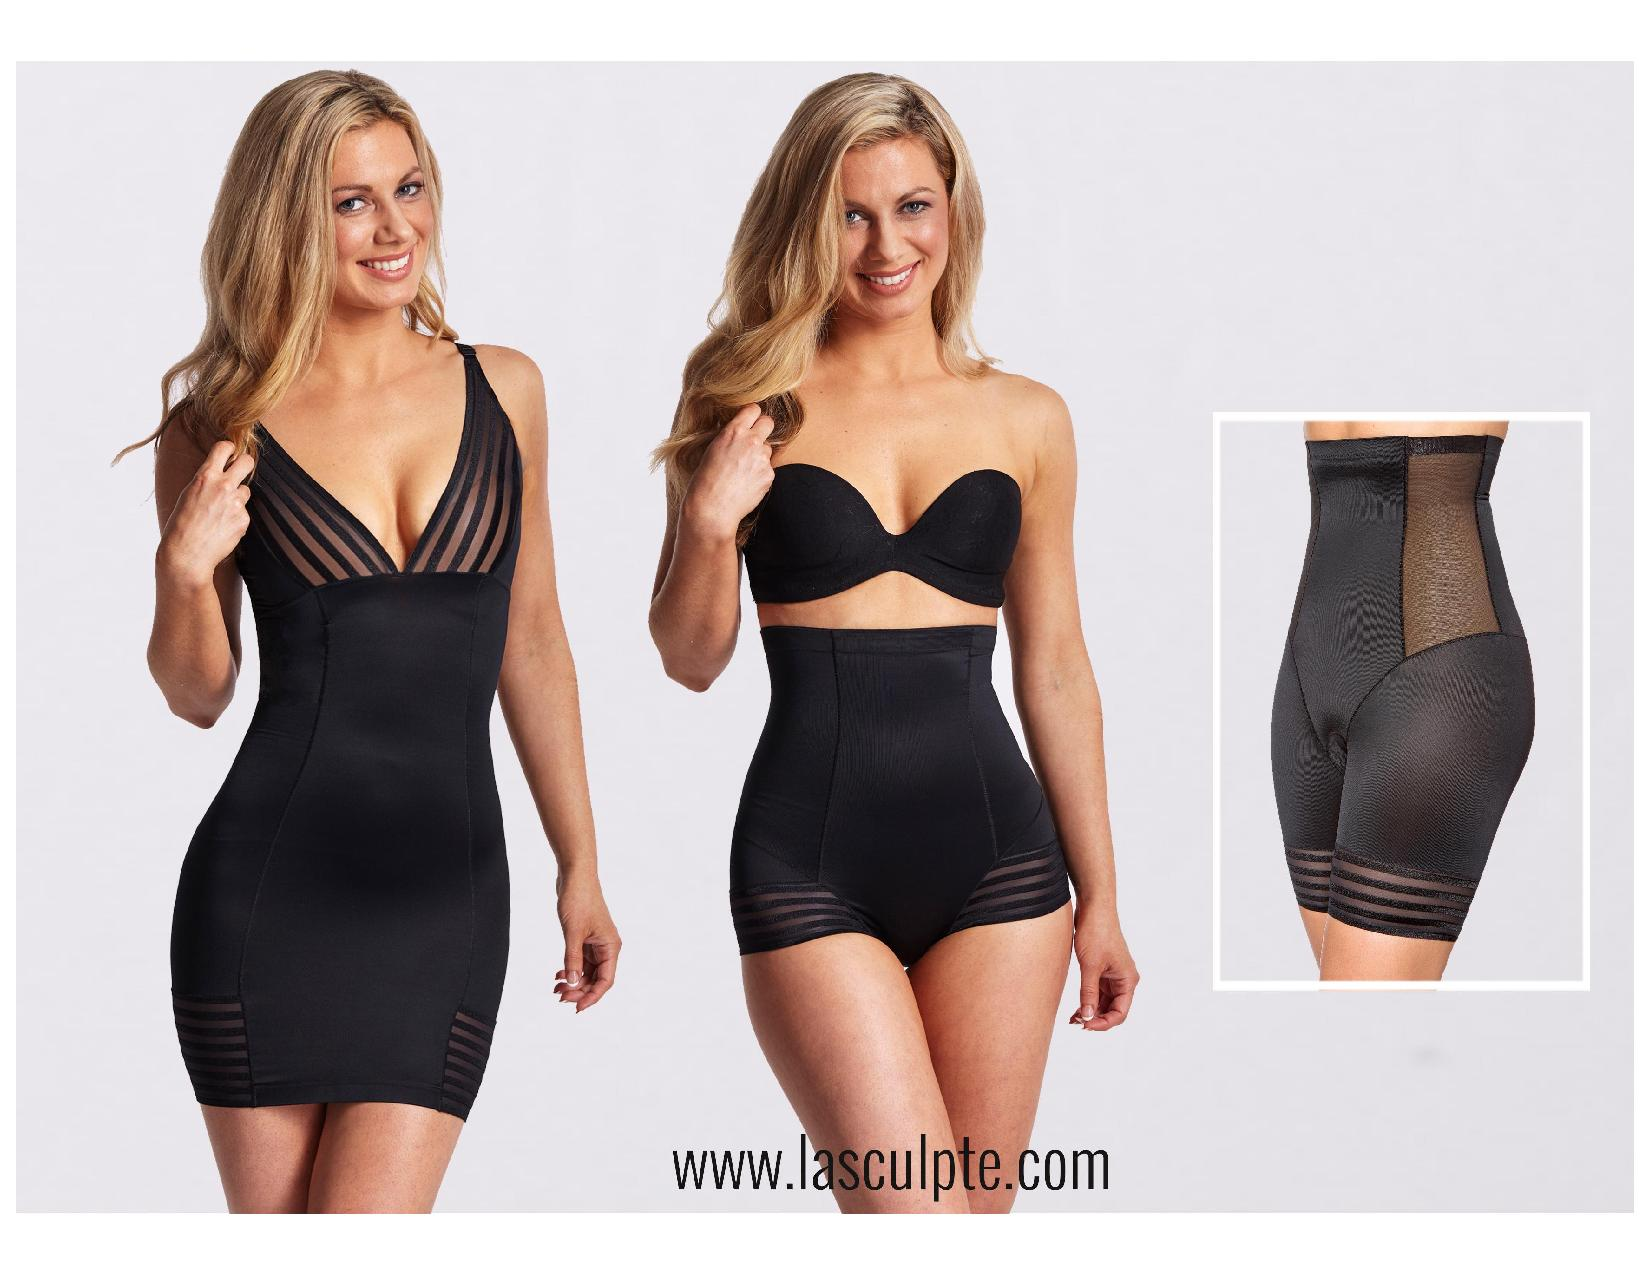 Lasculpte lookbook - Shapewear-page-002